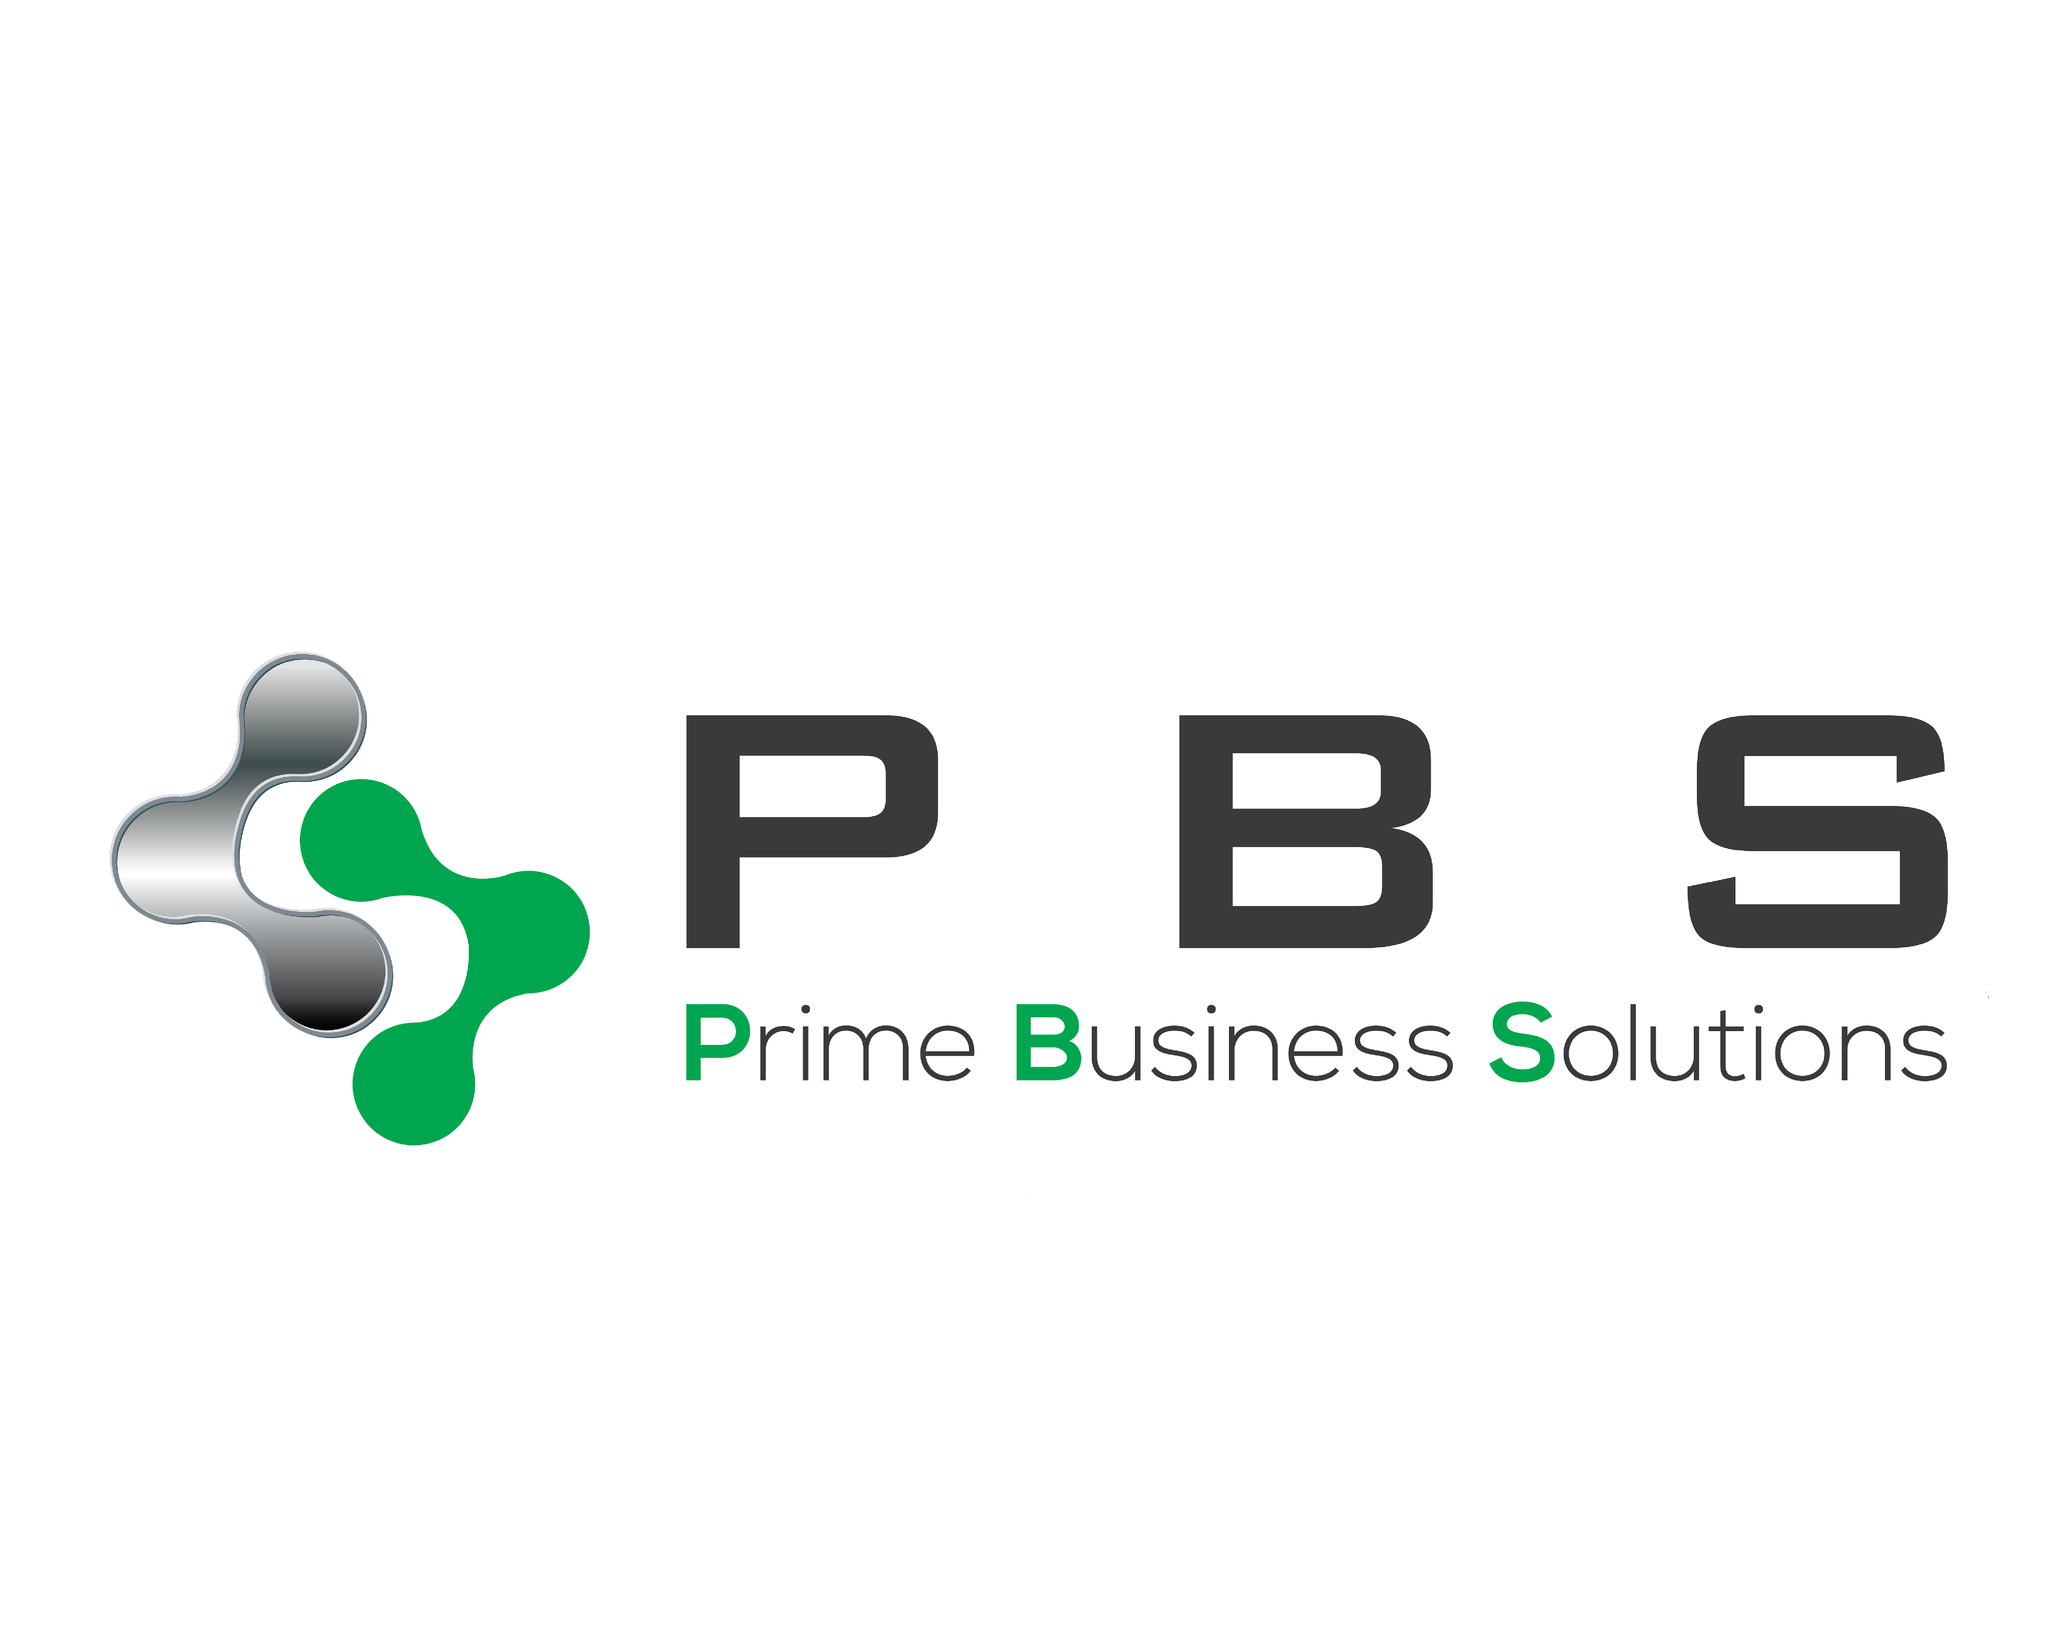 Prime Business Solutions LLC